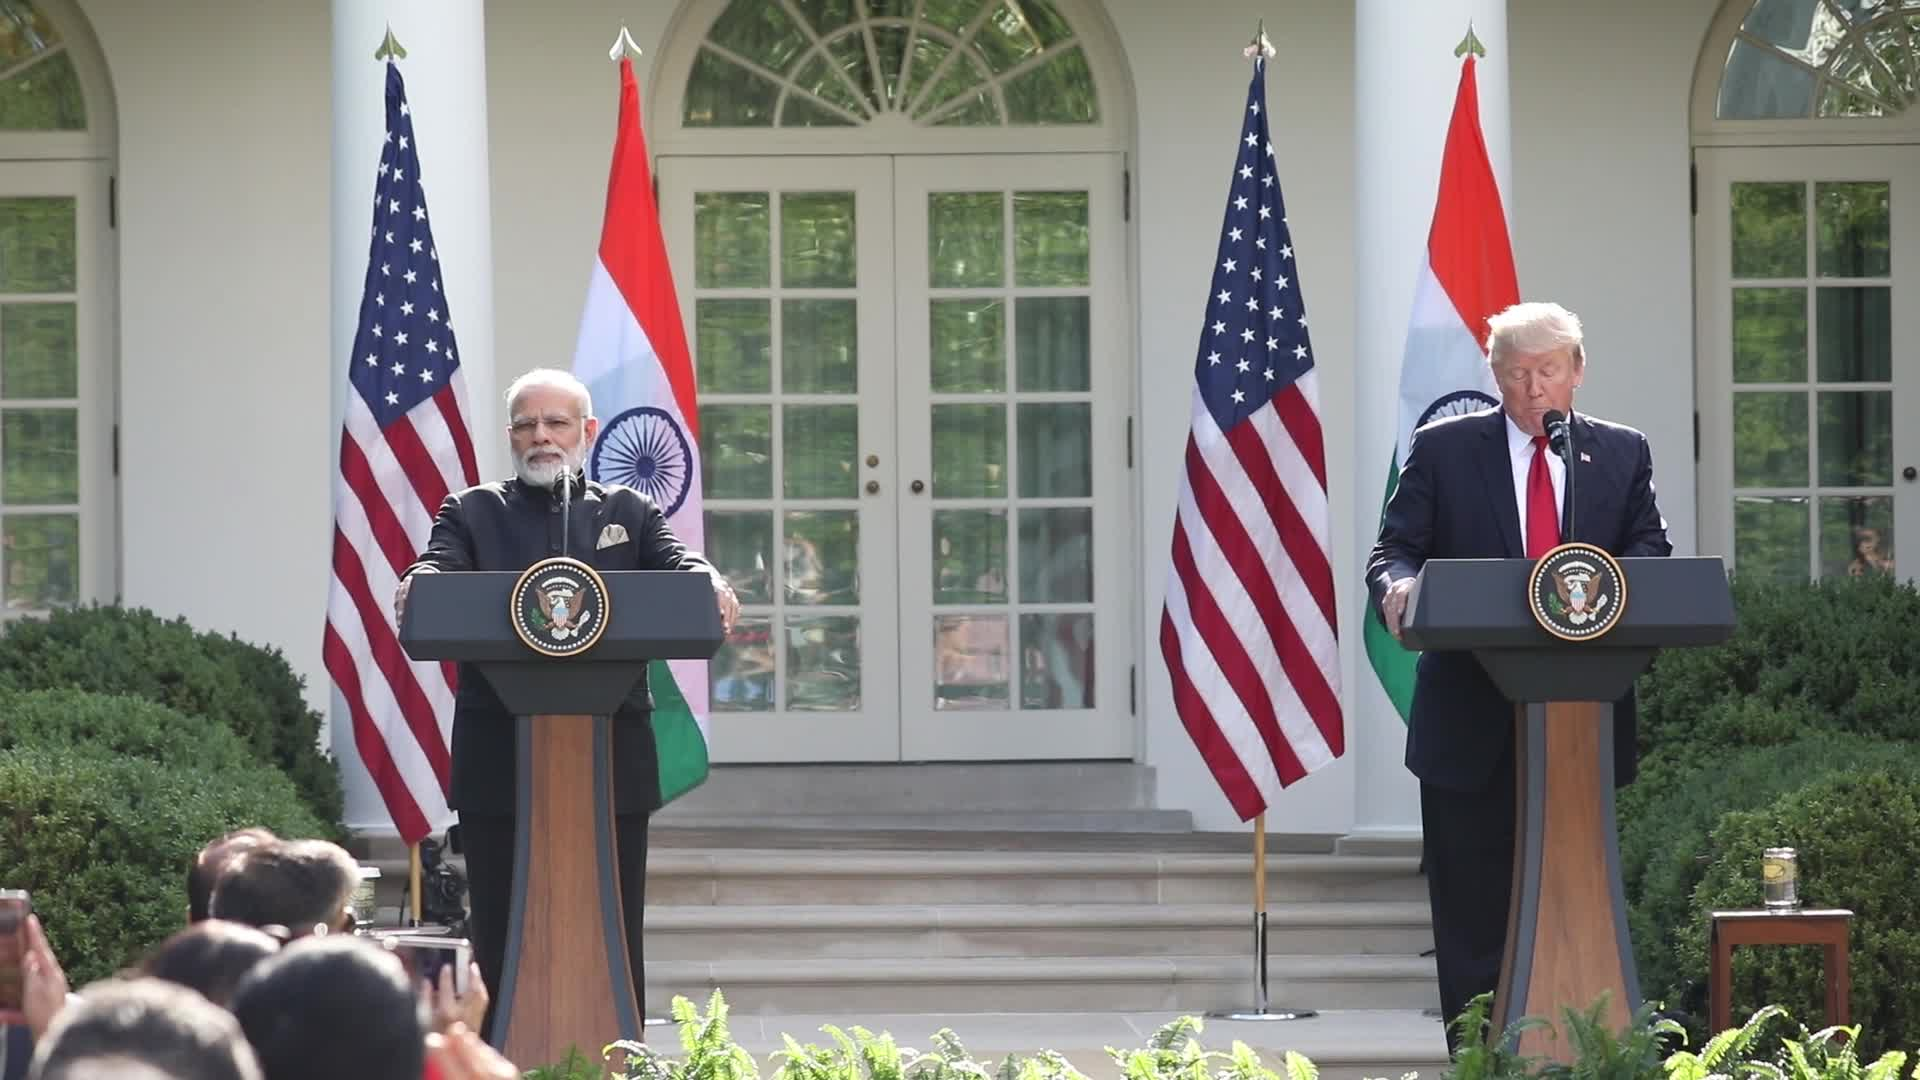 President Trump And Indian PM Modi Hold Joint Statement At White House